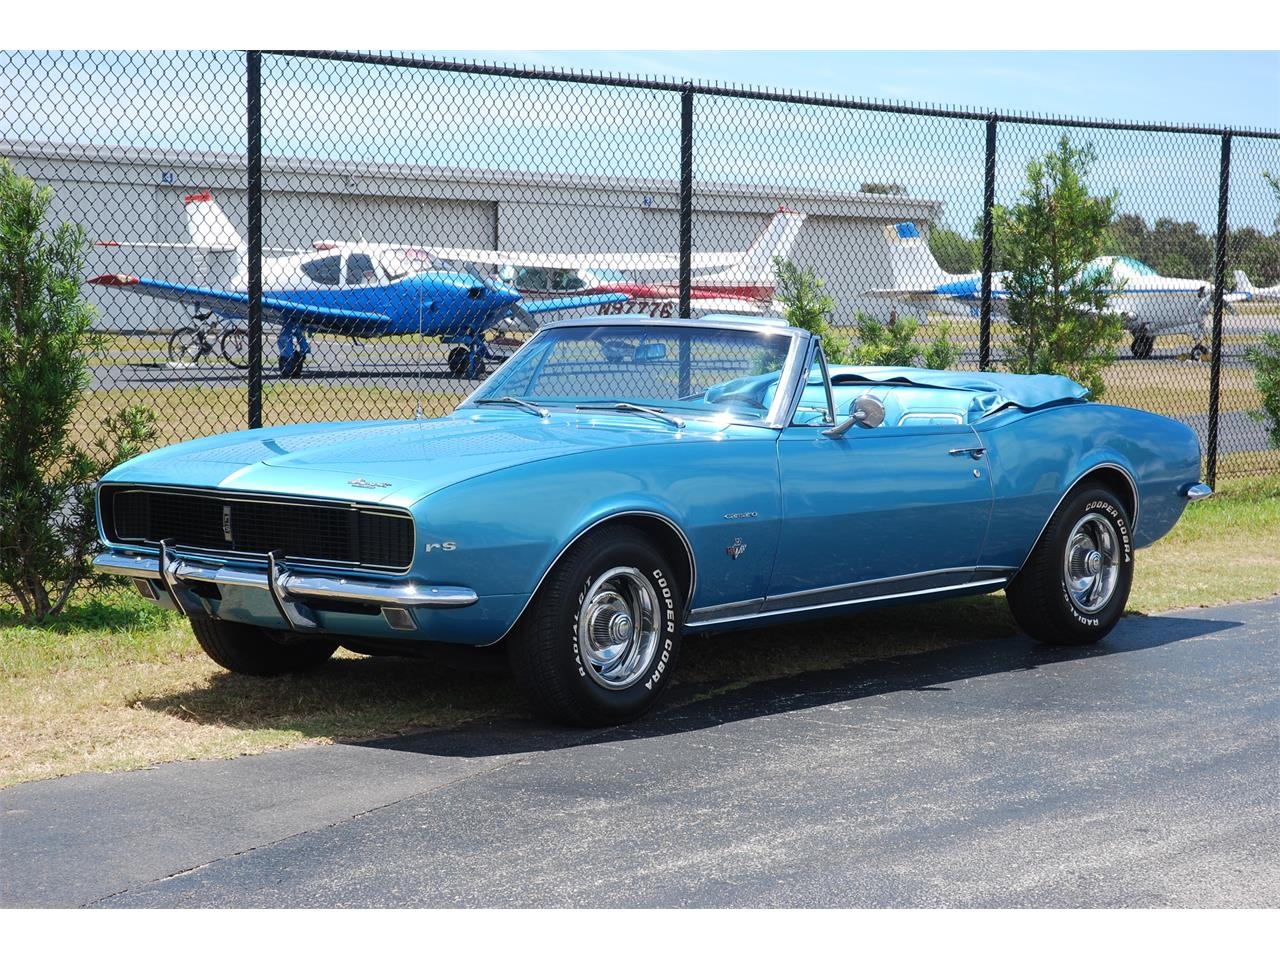 For Sale: 1967 Chevy Camaro RS Convertible in Clearwater, Florida